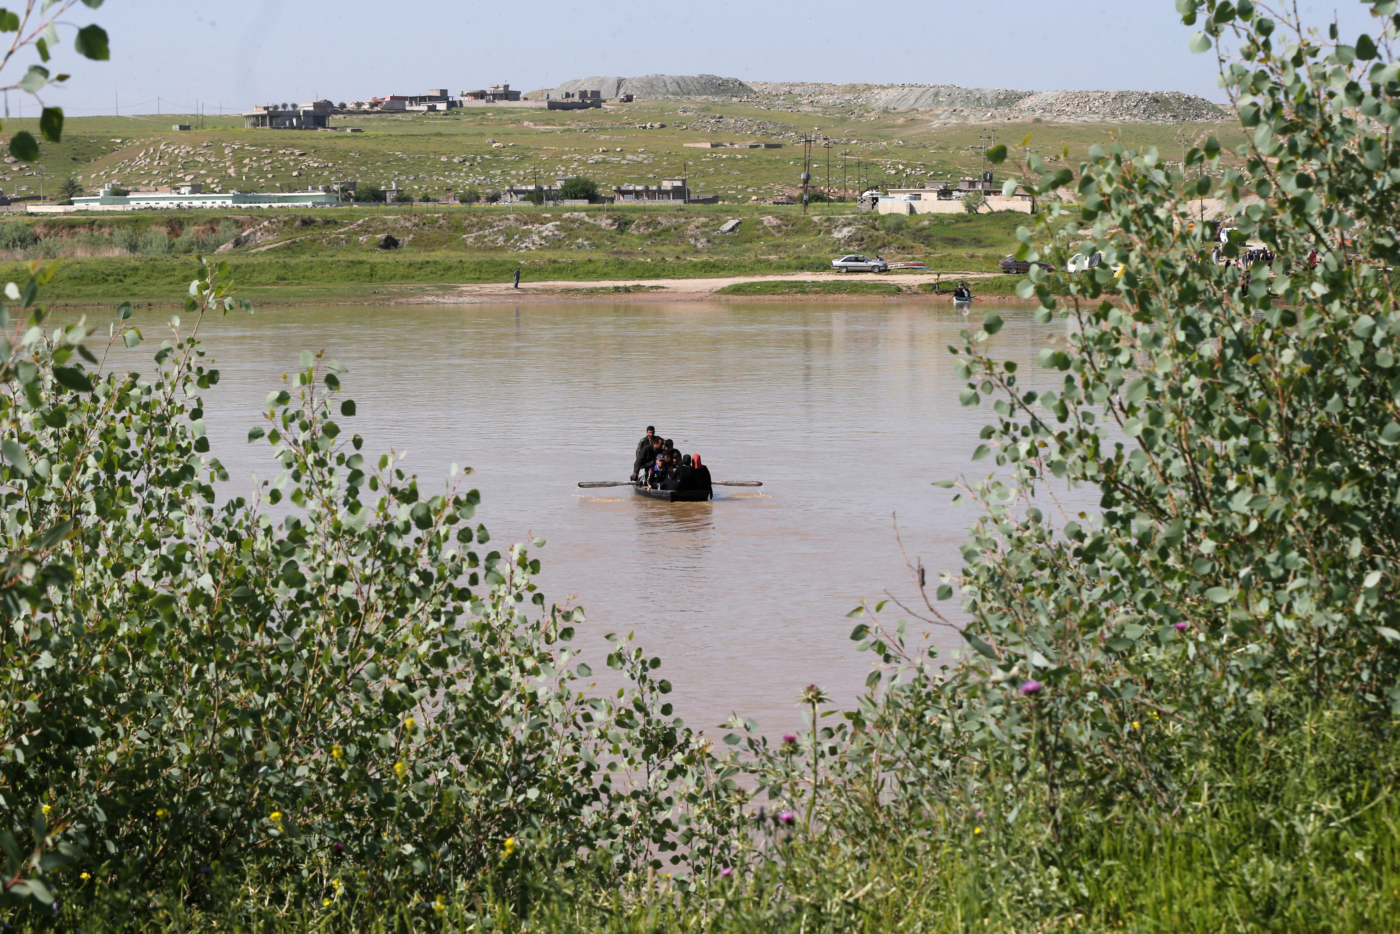 Displaced Iraqis from Mosul cross the Tigris by boat as flooding after days of rainfall has closed the city's bridges, at the village of Thibaniya, south of Mosul, Iraq April 16, 2017. REUTERS/Muhammad Hamed